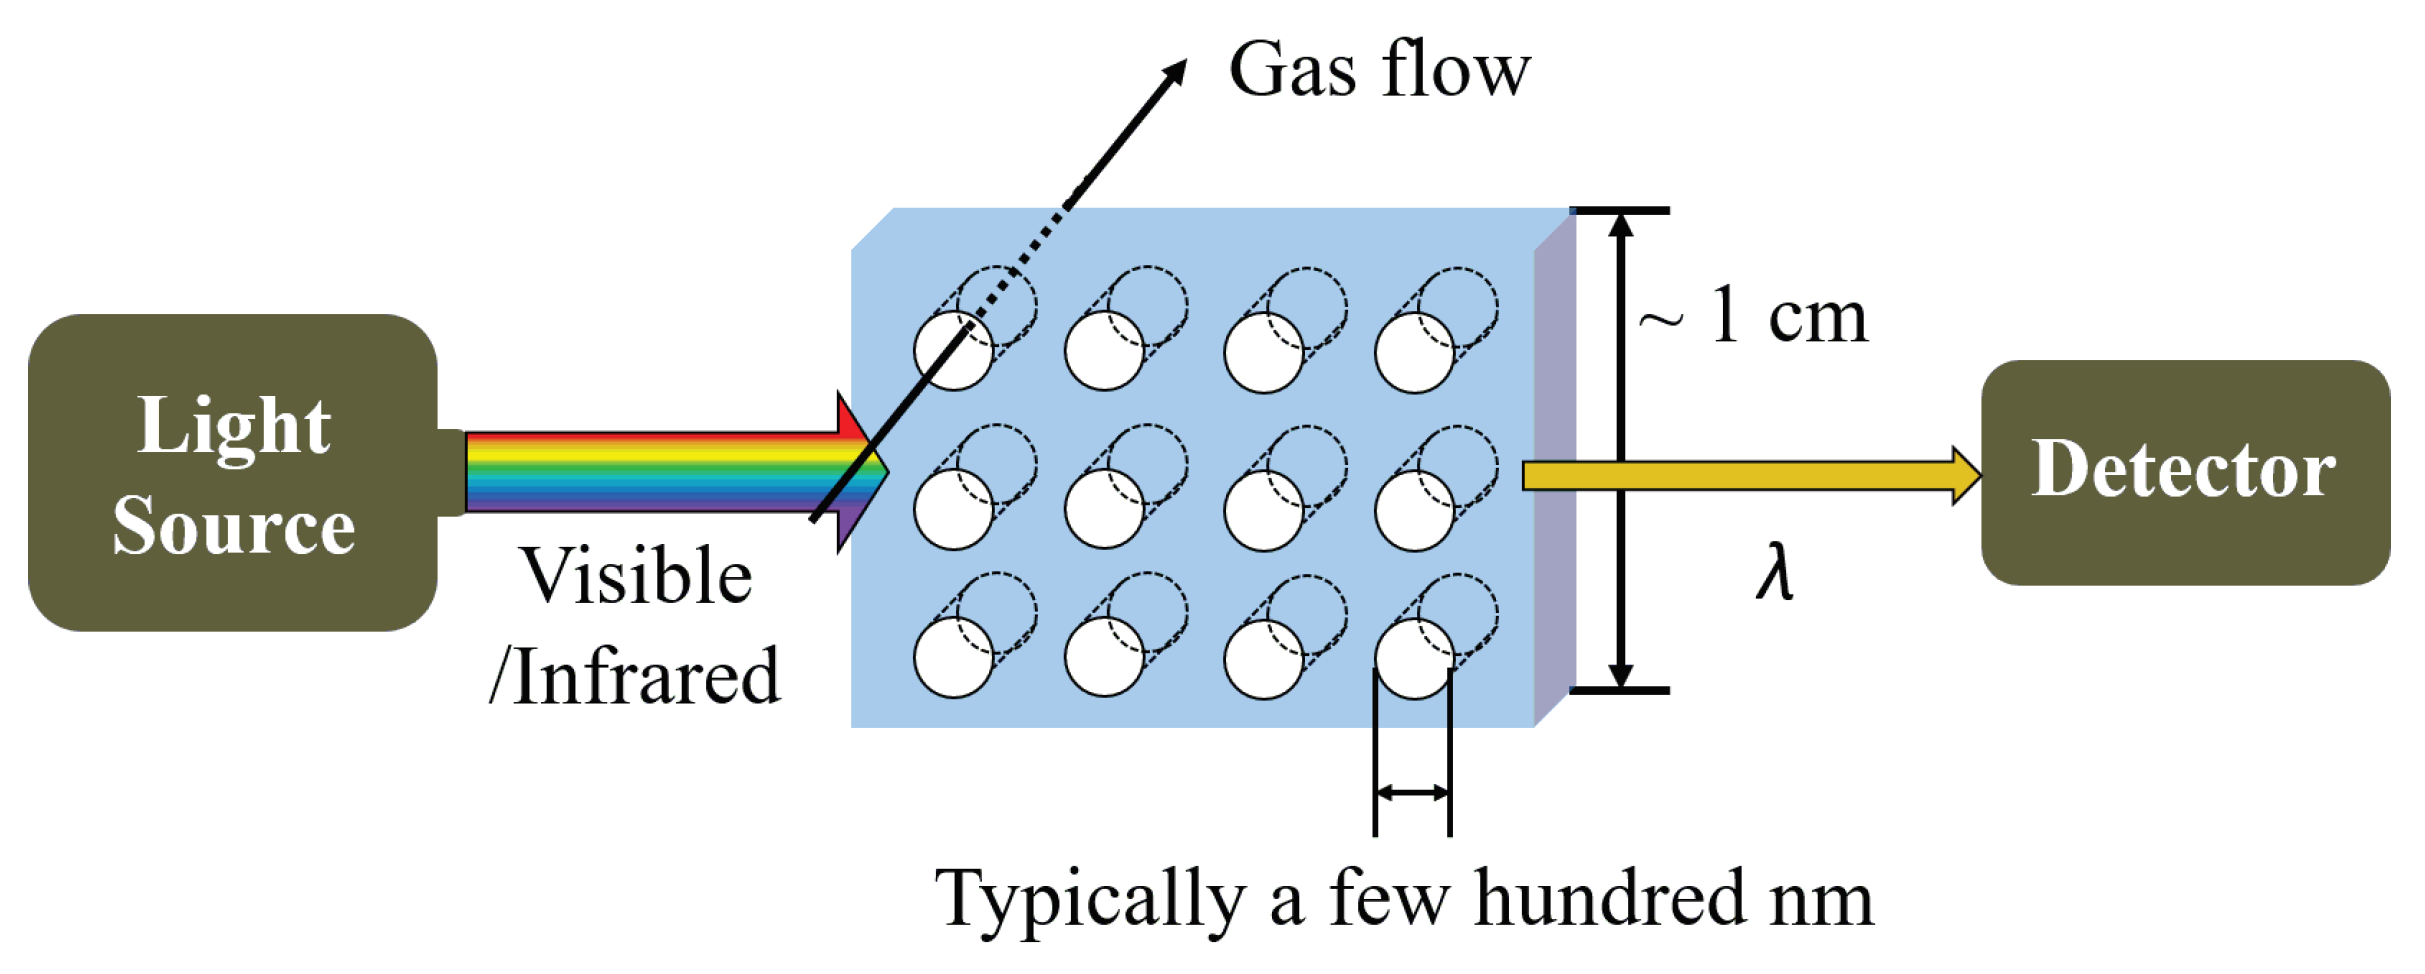 Handbook of Gas Sensor Materials Properties Conventional Approaches Advantages and Shortcomings for Applications Volume 1